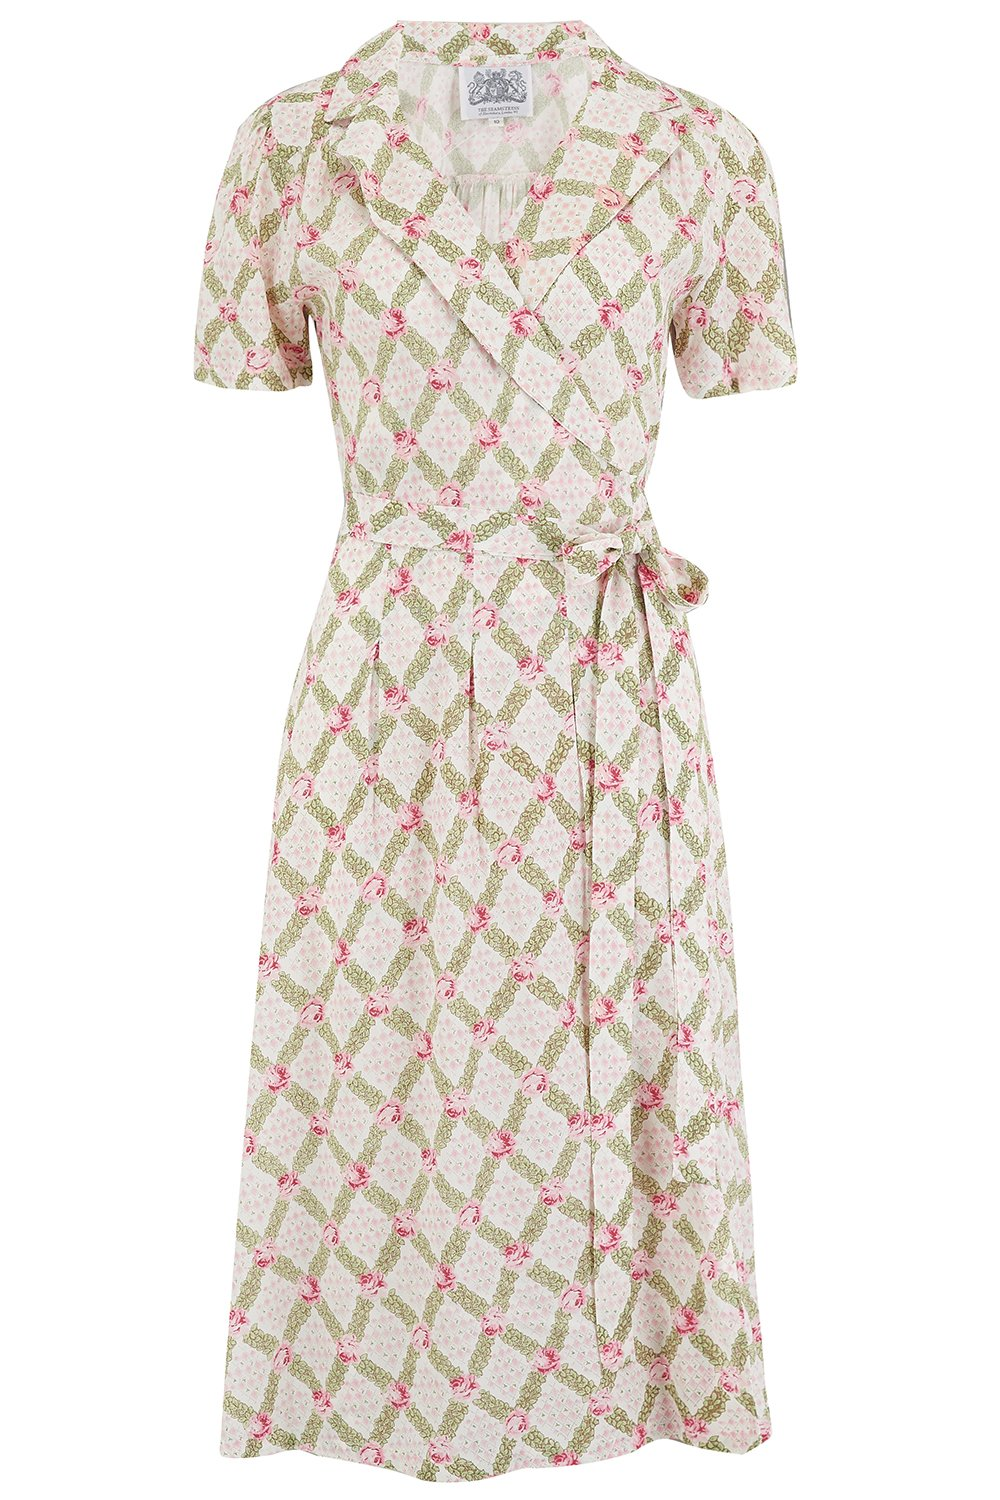 1940s Dresses and Clothing UK | 40s Shoes UK Peggy Wrap Dress in Rose Kiss Print Classic 1940s Vintage Style £79.01 AT vintagedancer.com